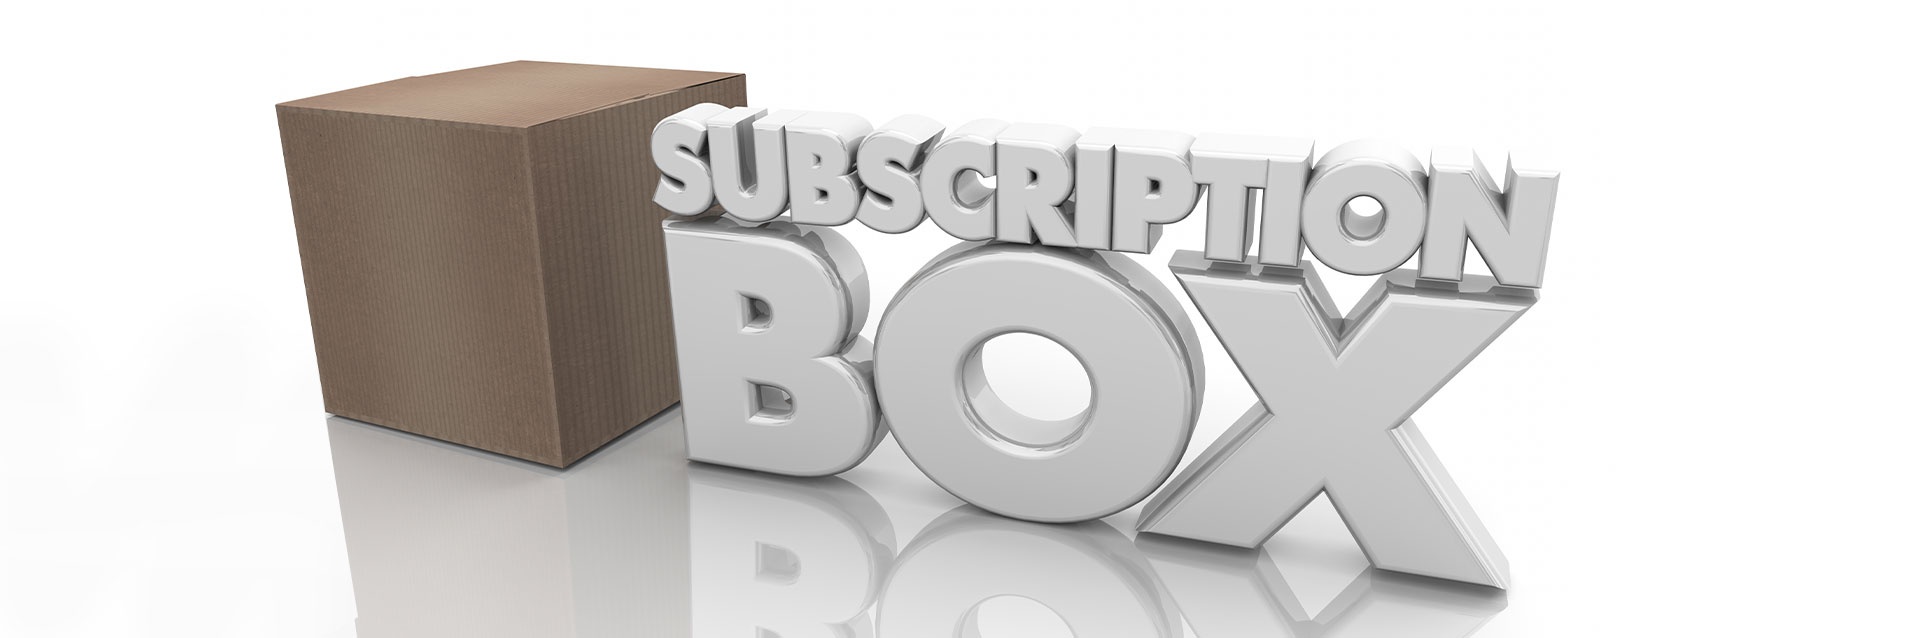 Subscription-box